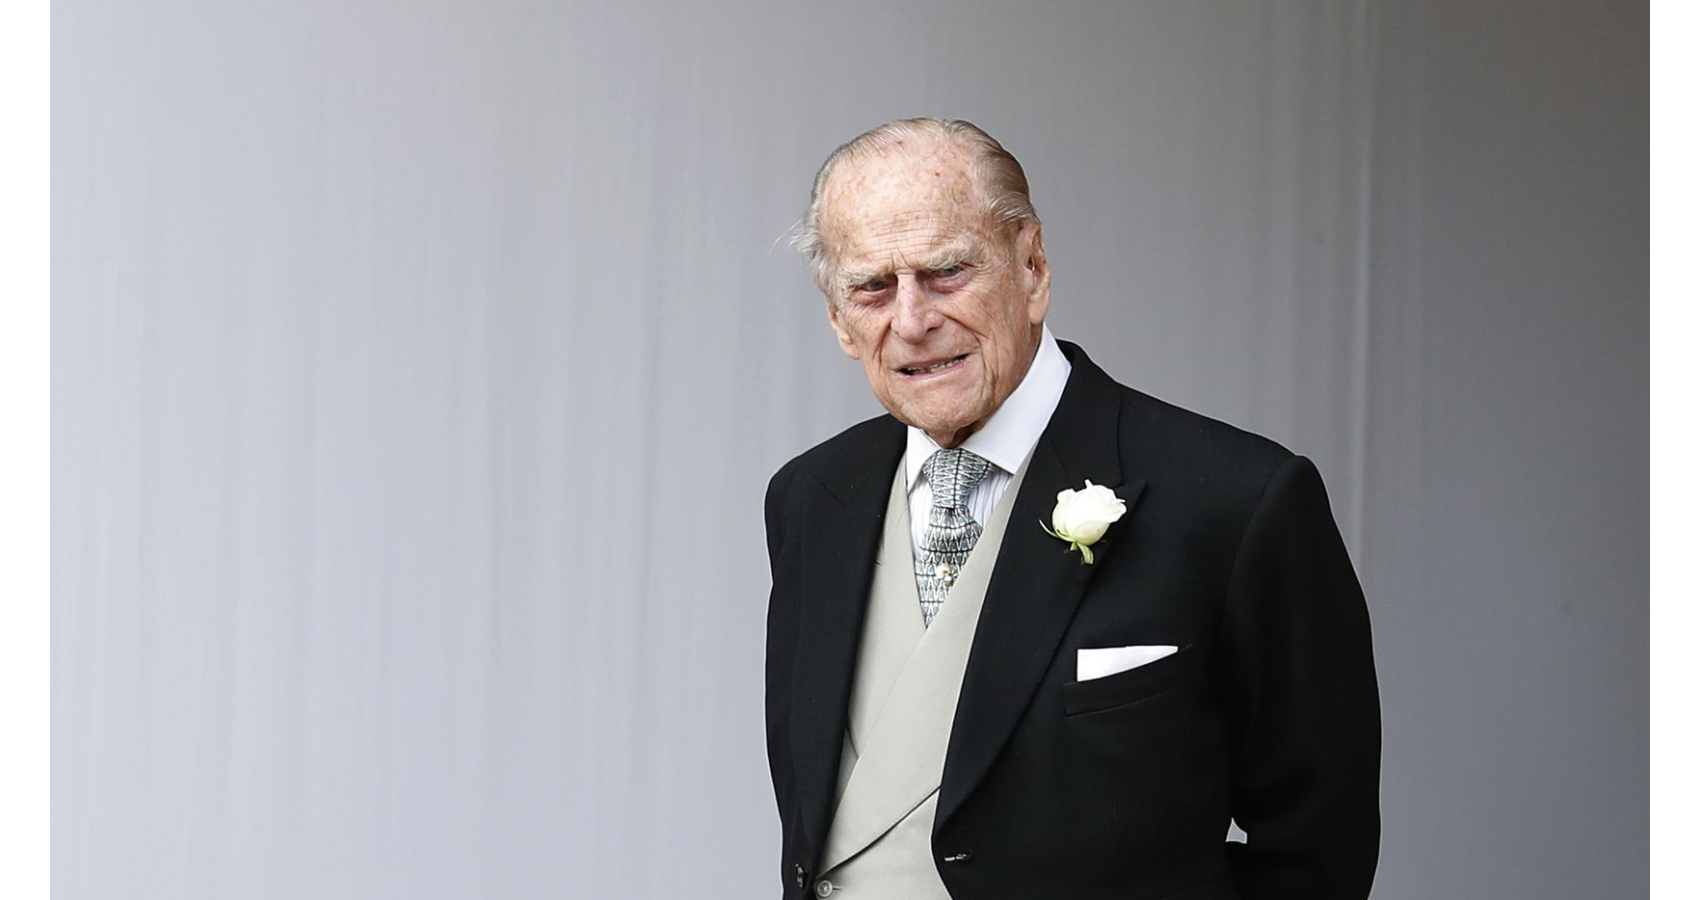 Prince Philip, 99, Husband Of Queen Elizabeth II, Is No More